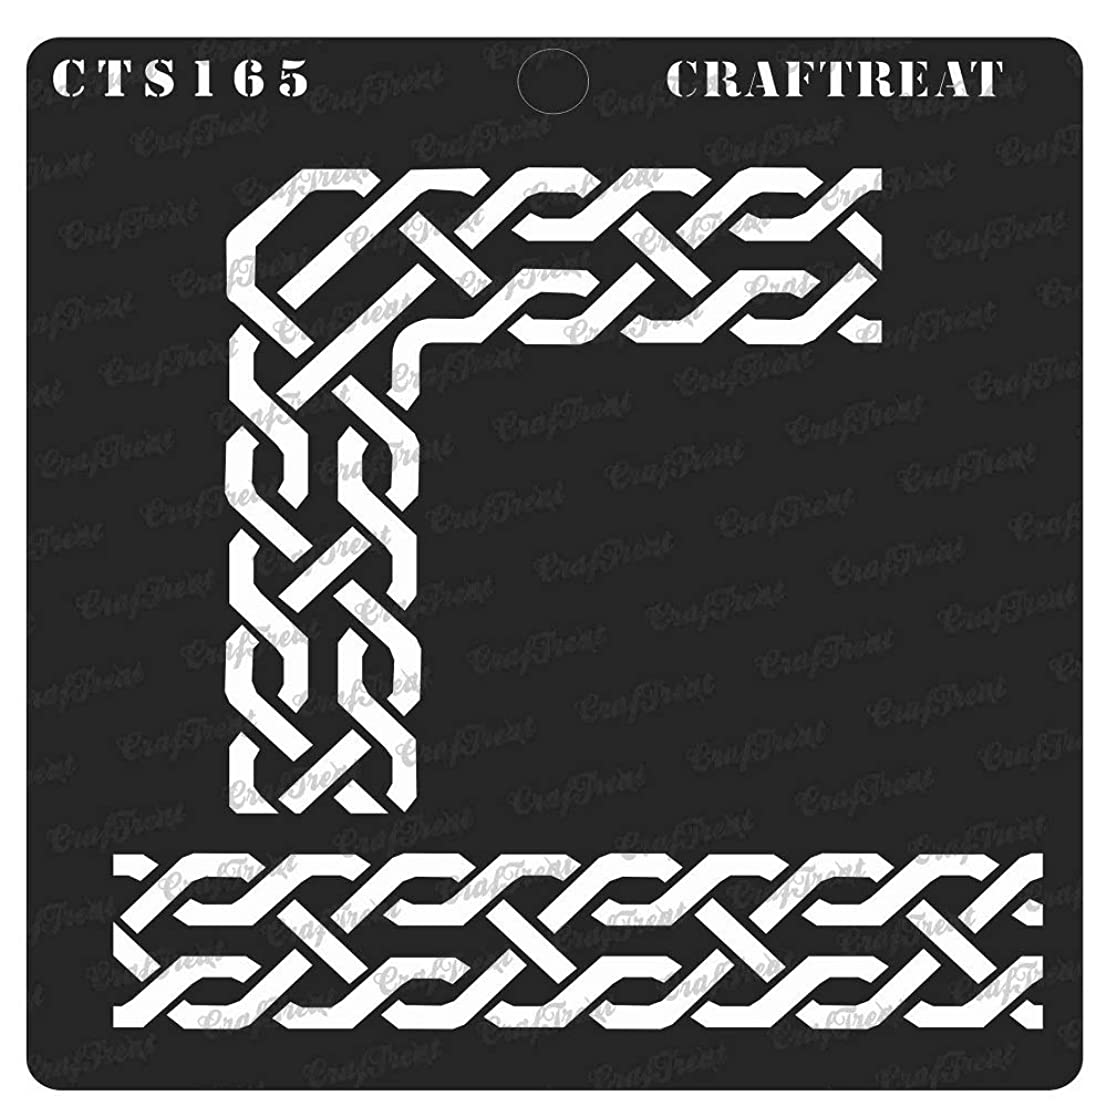 CrafTreat Stencil - Celtic Borders1 | Reusable Painting Template for Notebook, Home Decor, Crafting, DIY Albums, Scrapbook, Decoration and Printing on Paper, Floor, Wall, Fabric, Wood 6